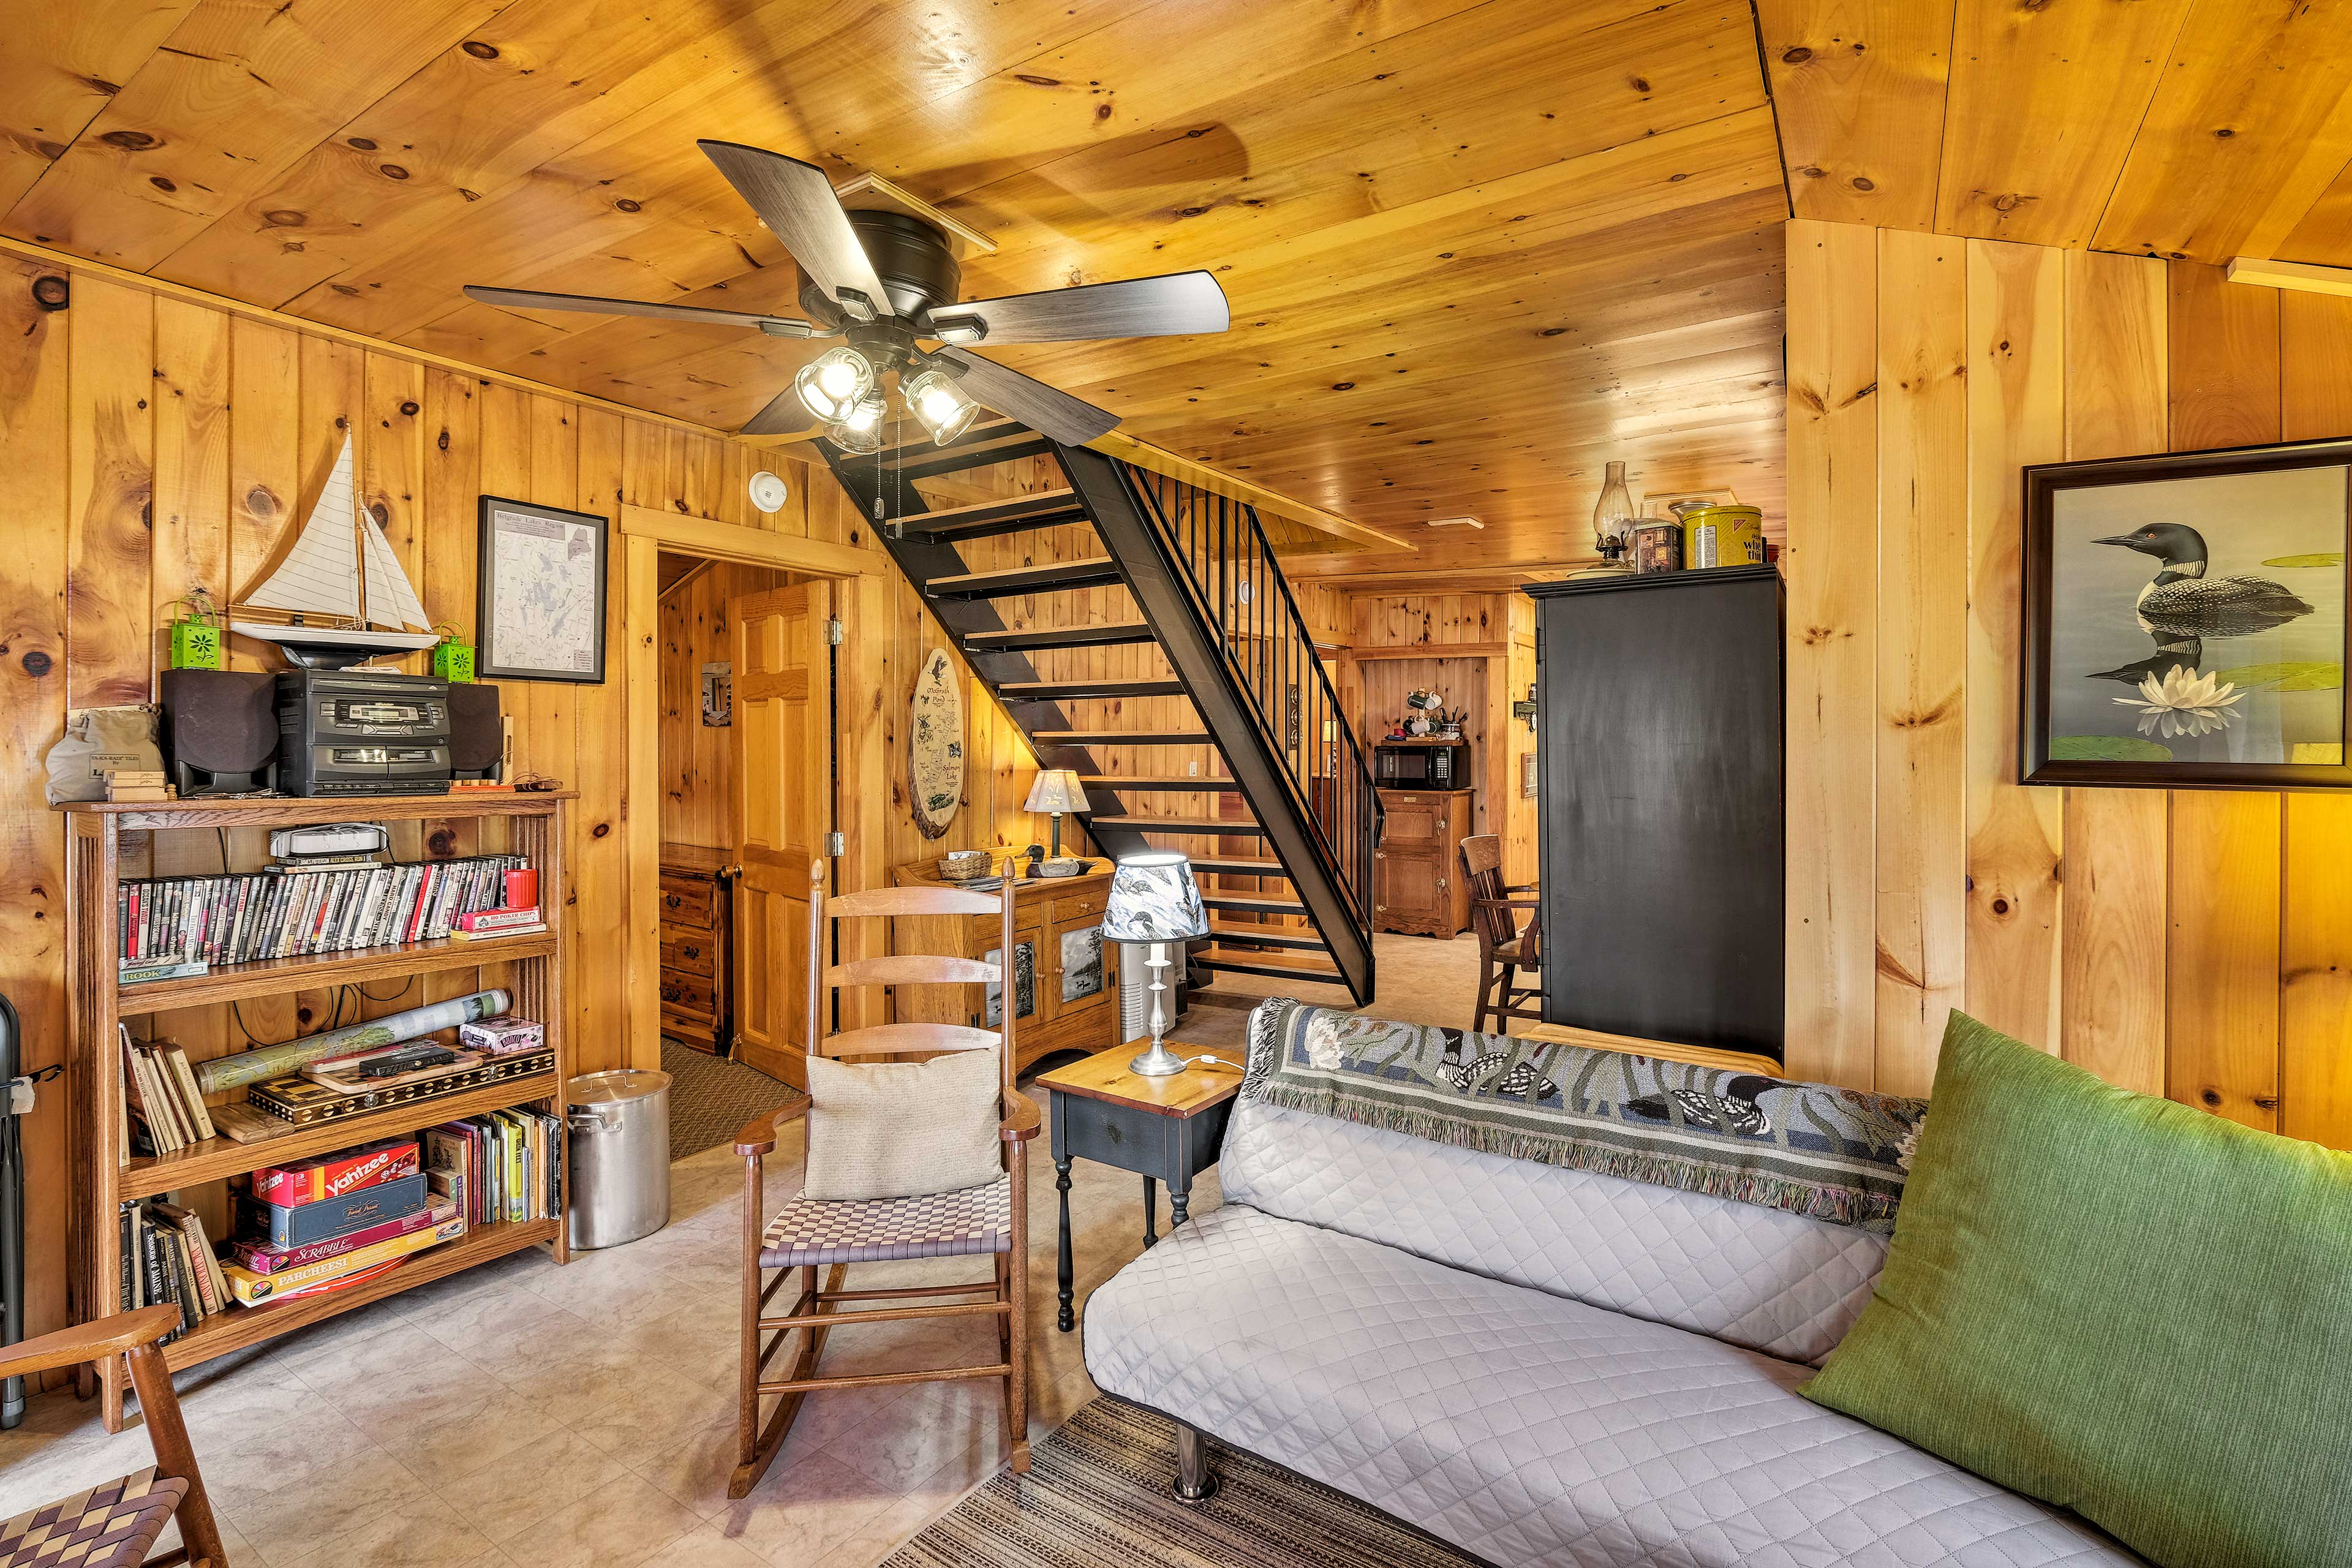 The futon in the living area offers sleeping for an additional guest.